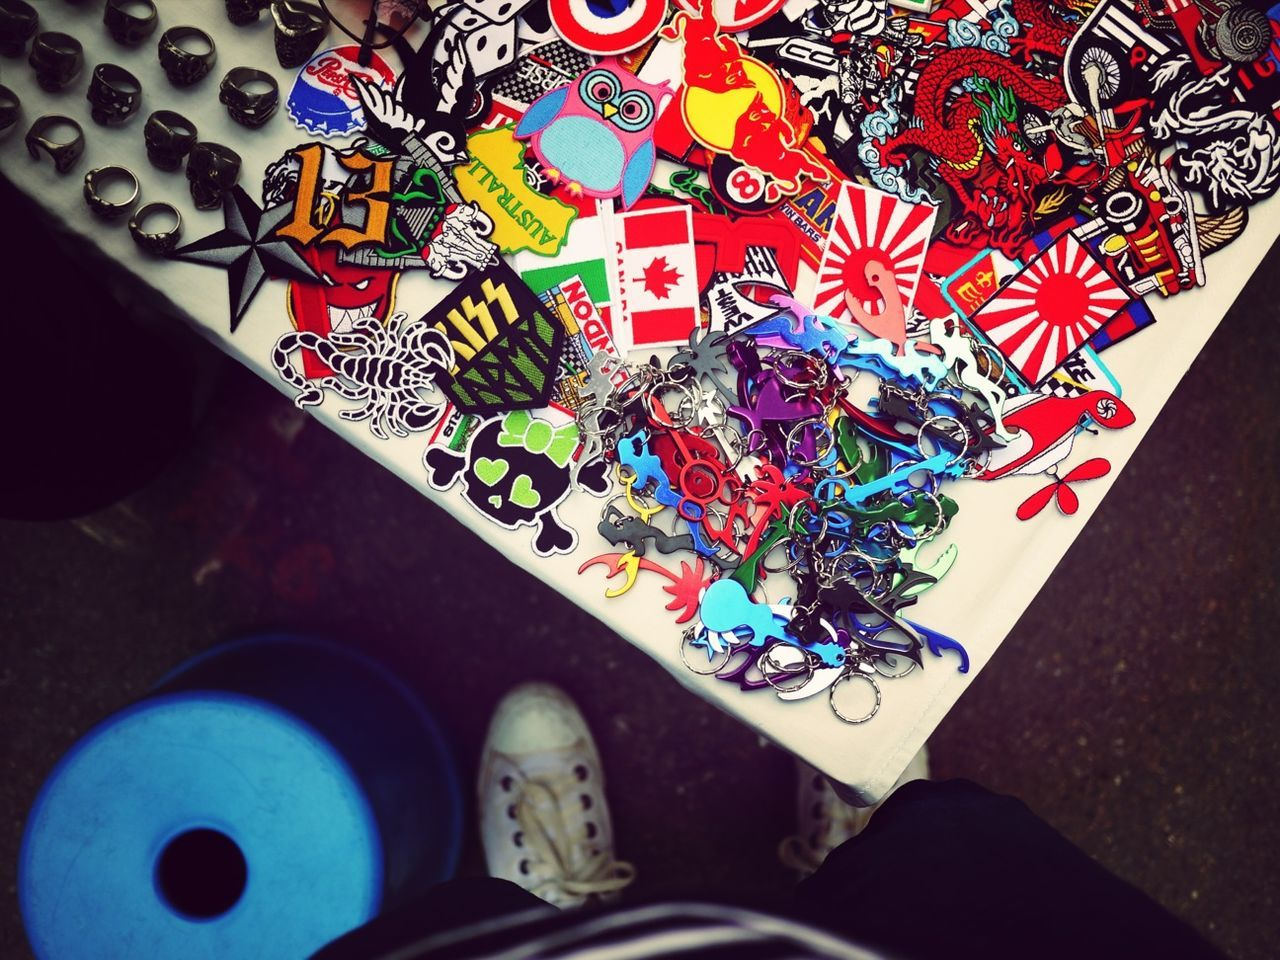 Close-up overhead view of colorful artifacts for sale